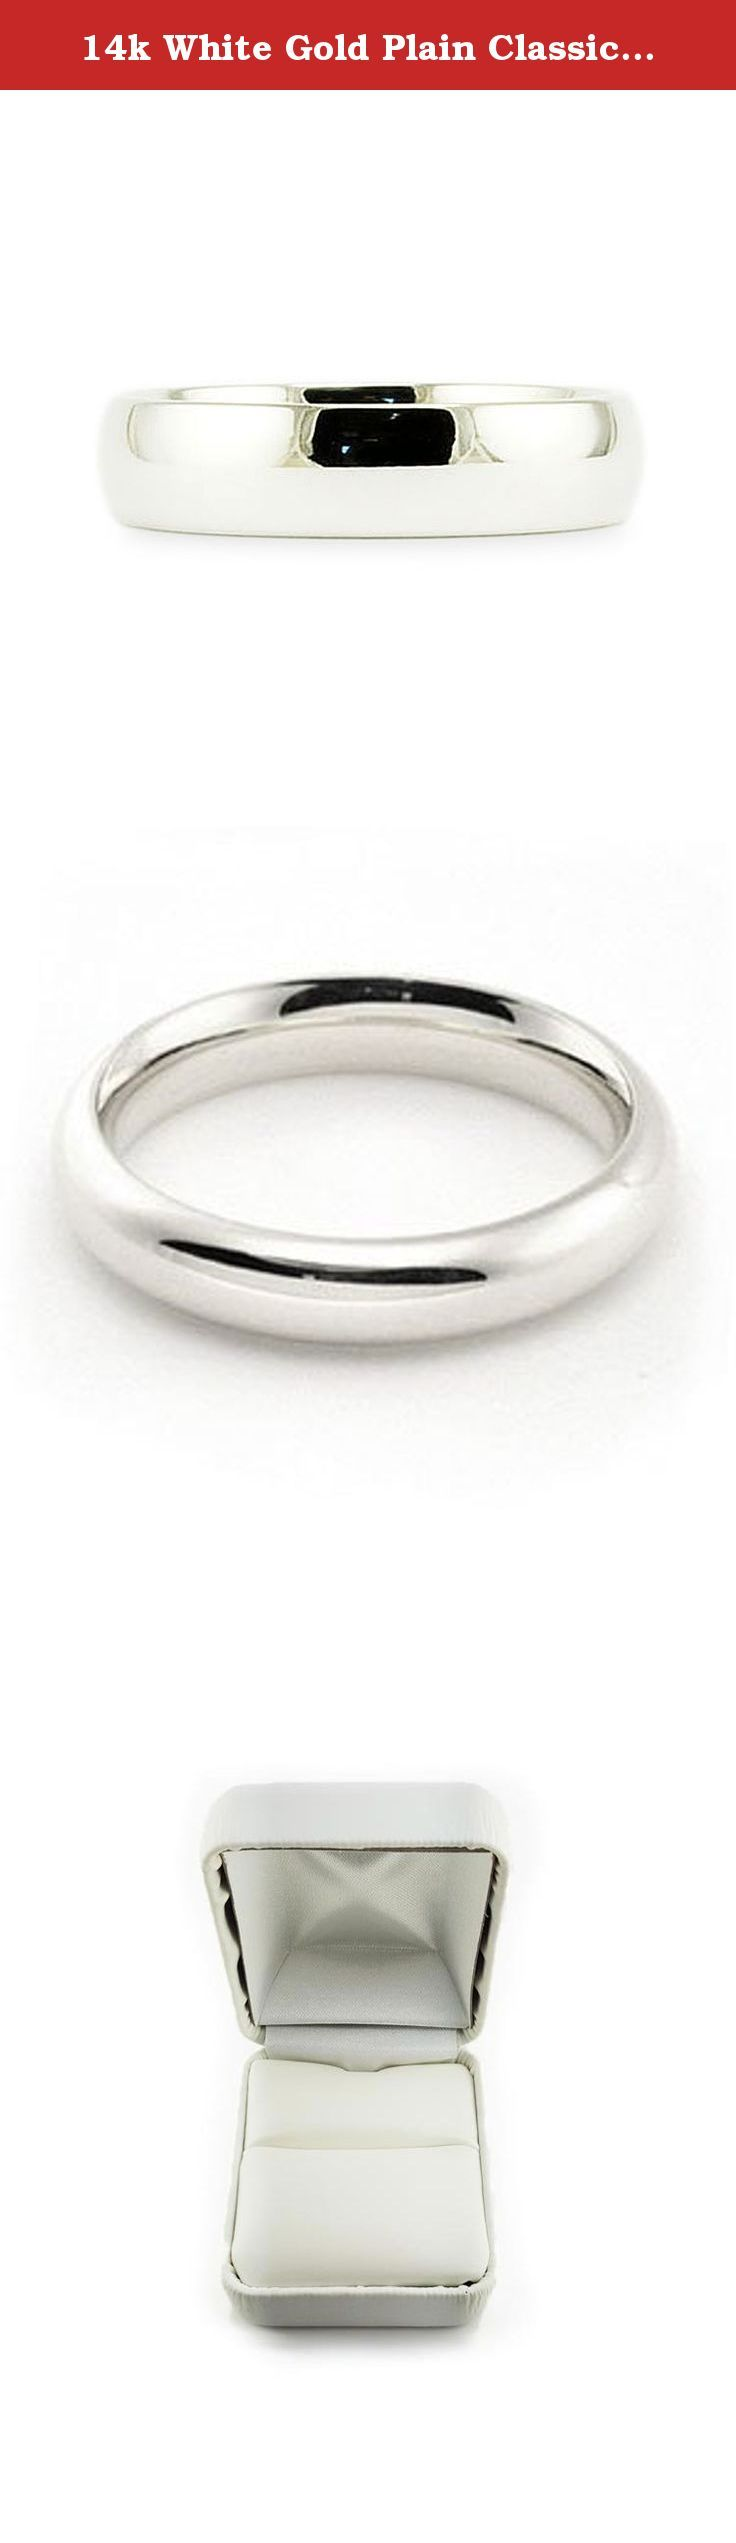 14k White Gold Plain Classic 4mm COMFORT FIT WEDDING BAND size 10. This beautiful classic band has a slightly rounded body, bright finish and is comfort fit. The comfort fit design features a rounded polished interior that allows the ring to slide easily and rest comfortably on the finger. Caring For Your Jewelry To keep your jewelry shining and scratch-free, avoid contact with harsh chemicals and chlorine. To clean gold jewelry, use warm water and a mild soap. We do not suggest using a...